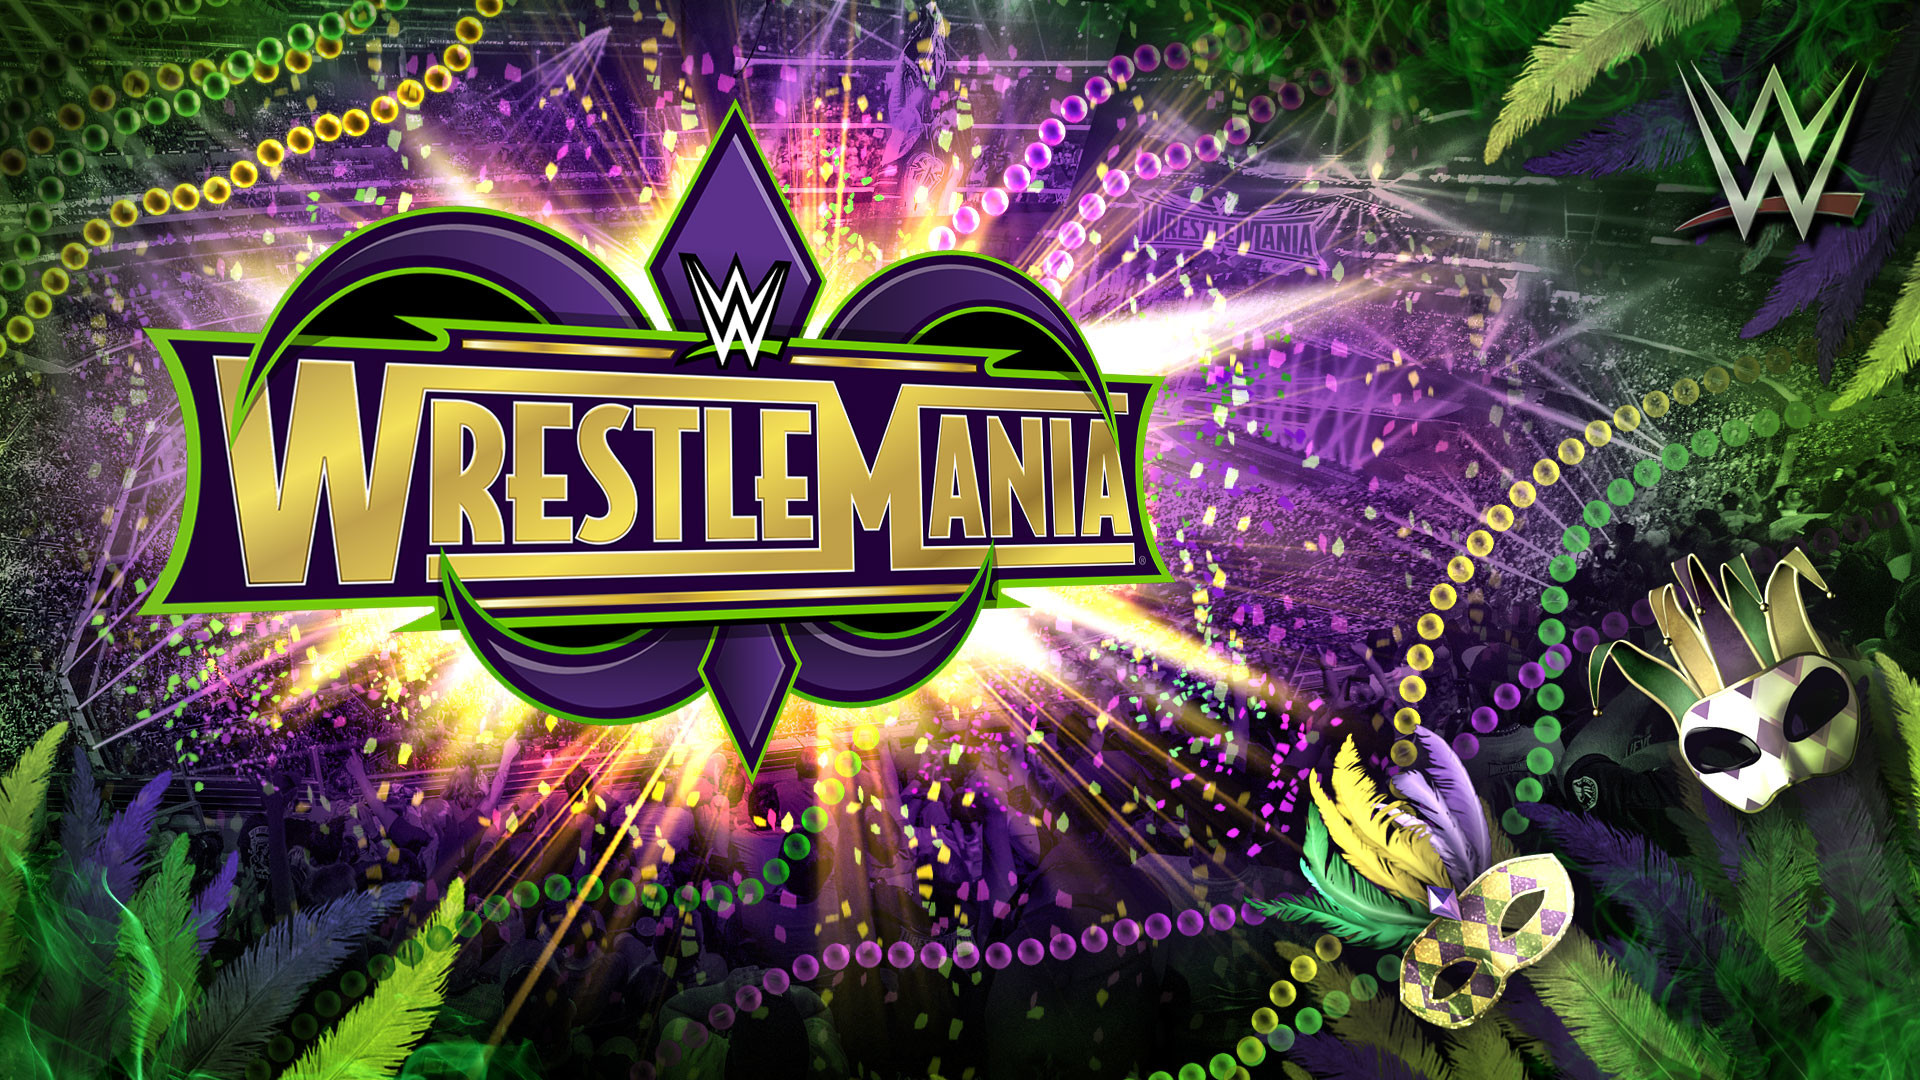 wwe desktop background